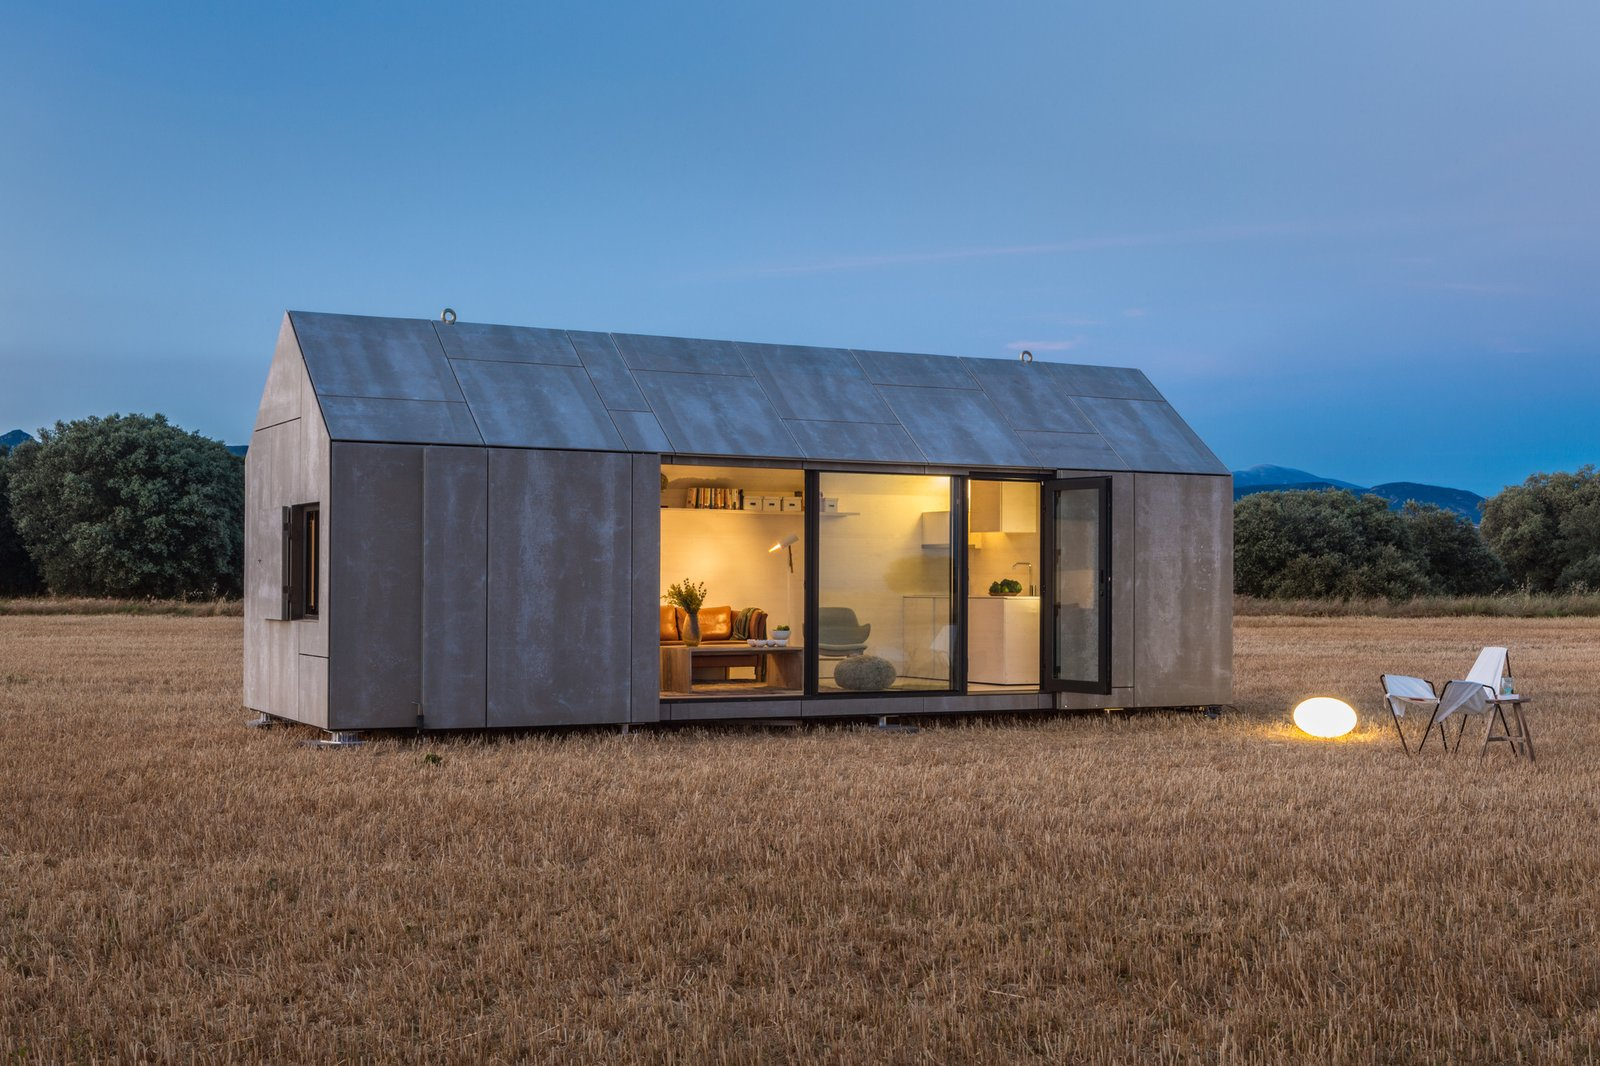 Affordable modern prefab cabins dwell